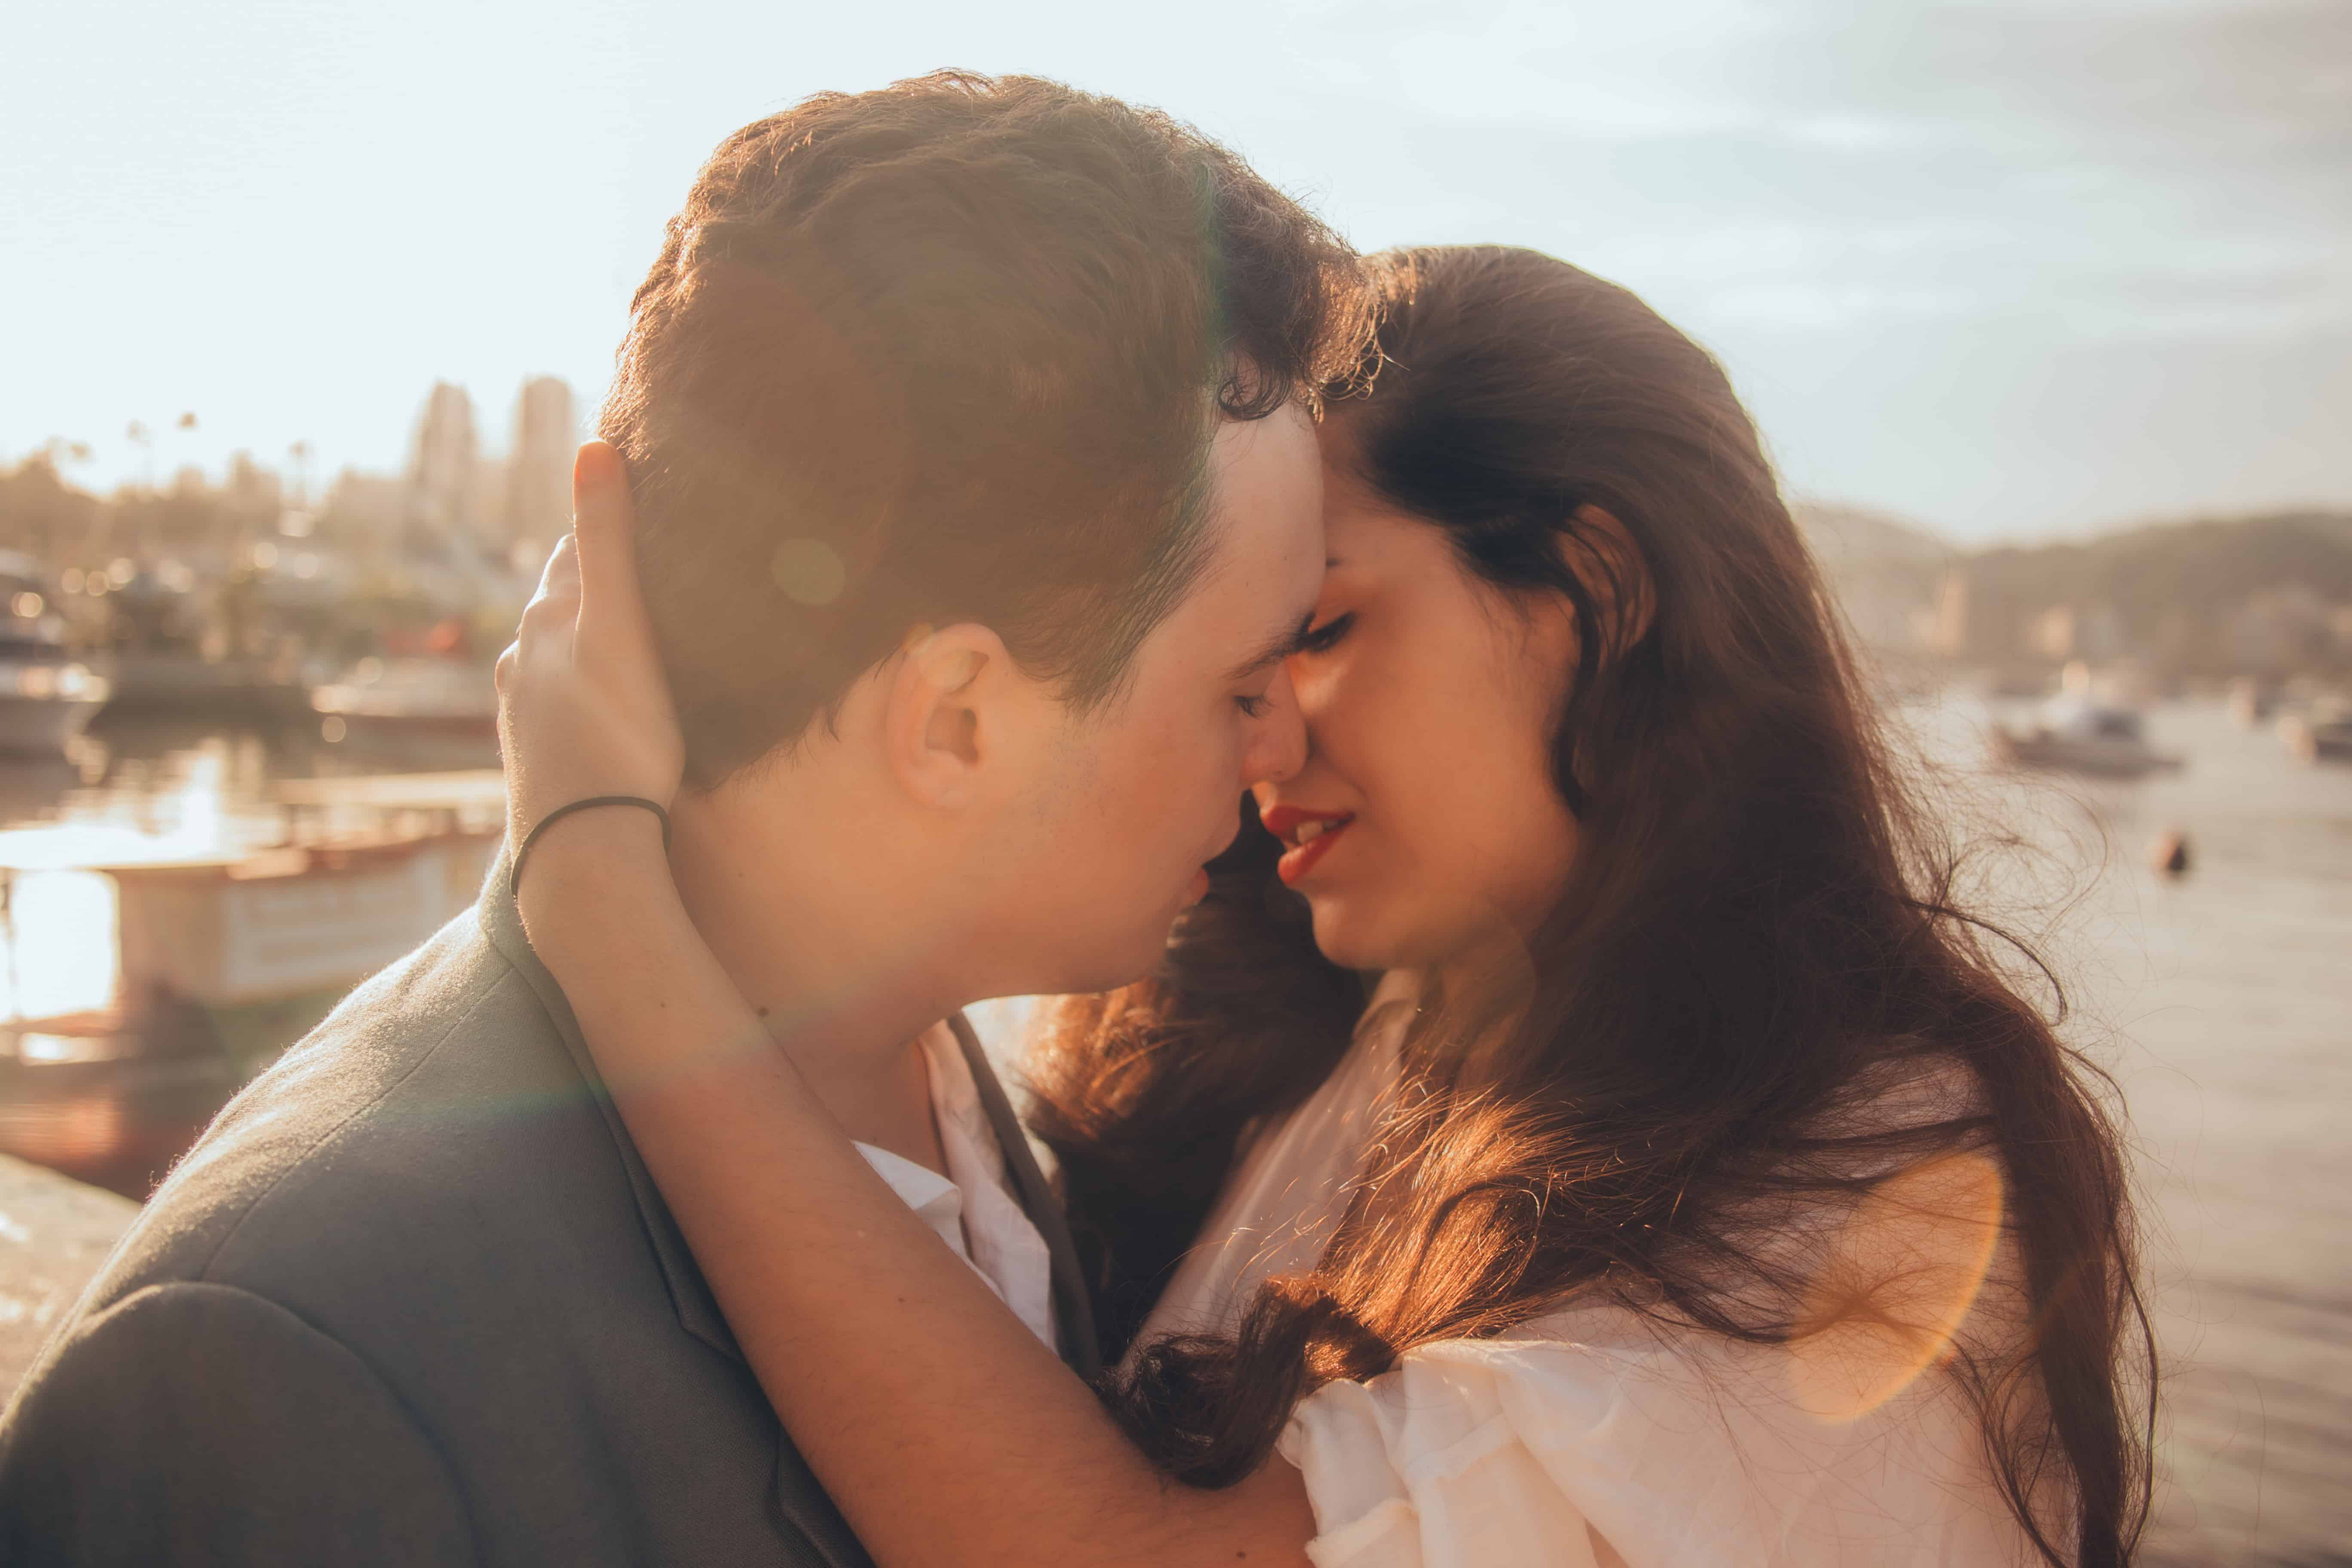 Reignite the spark in your marriage